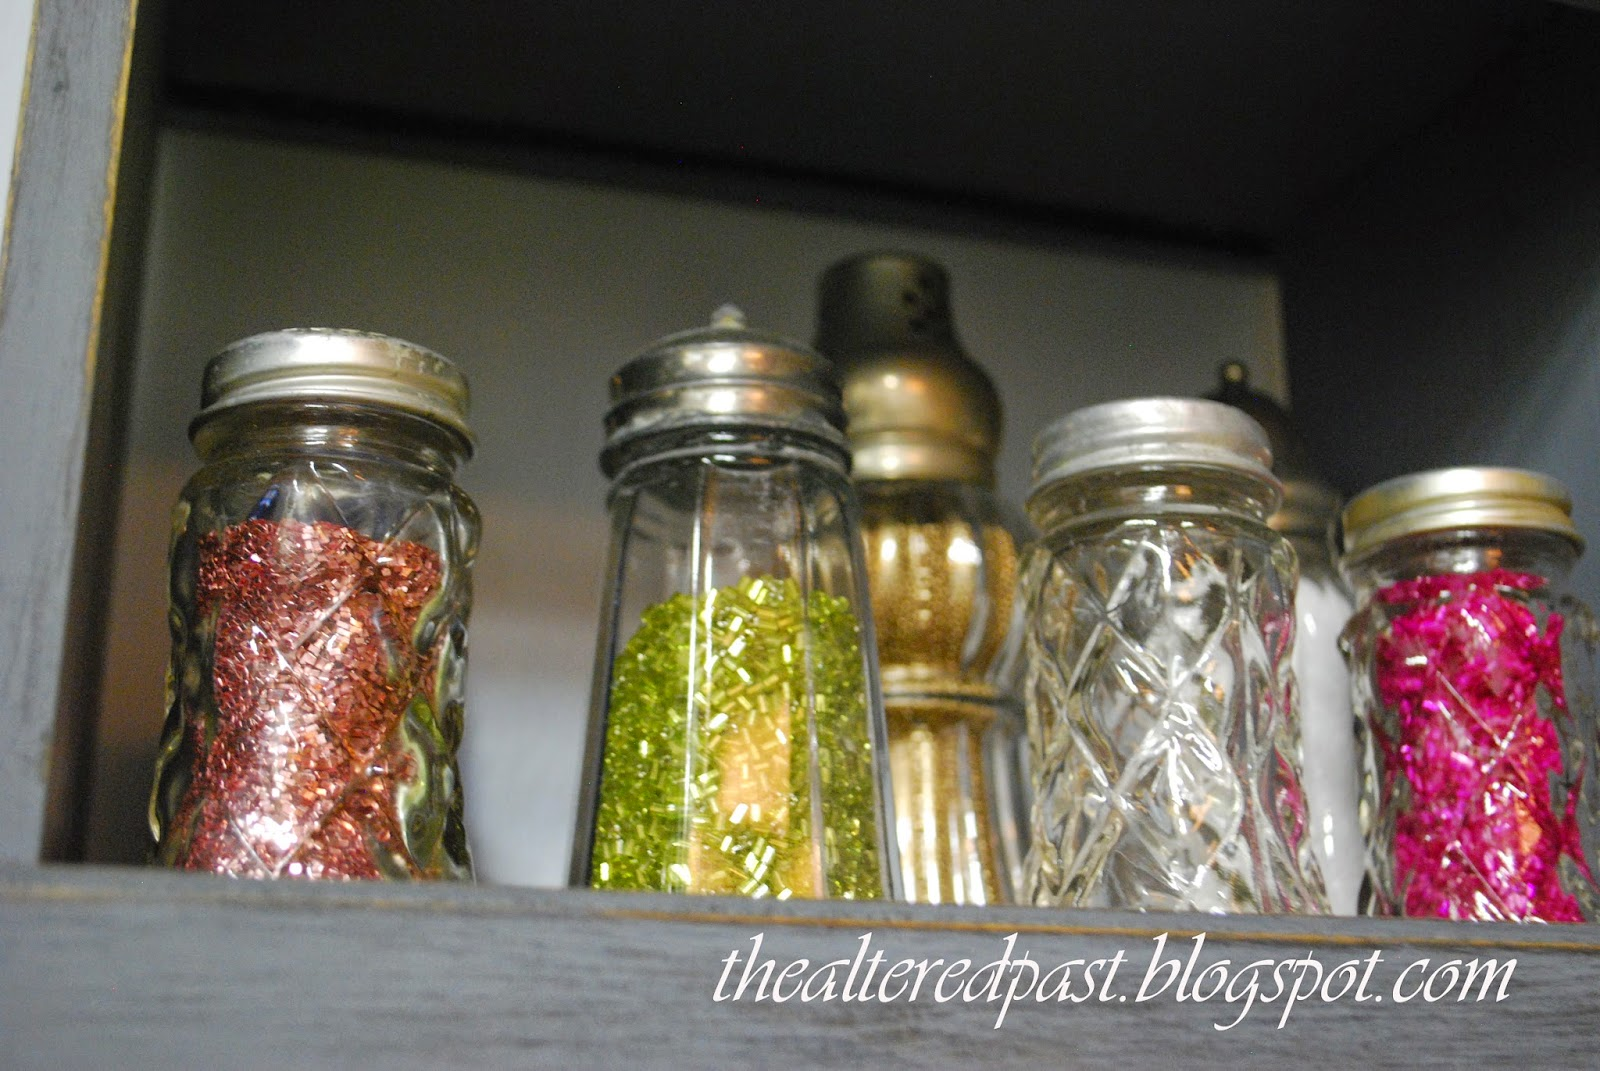 workroom studio, the altered past blog, glitter in salt shakers